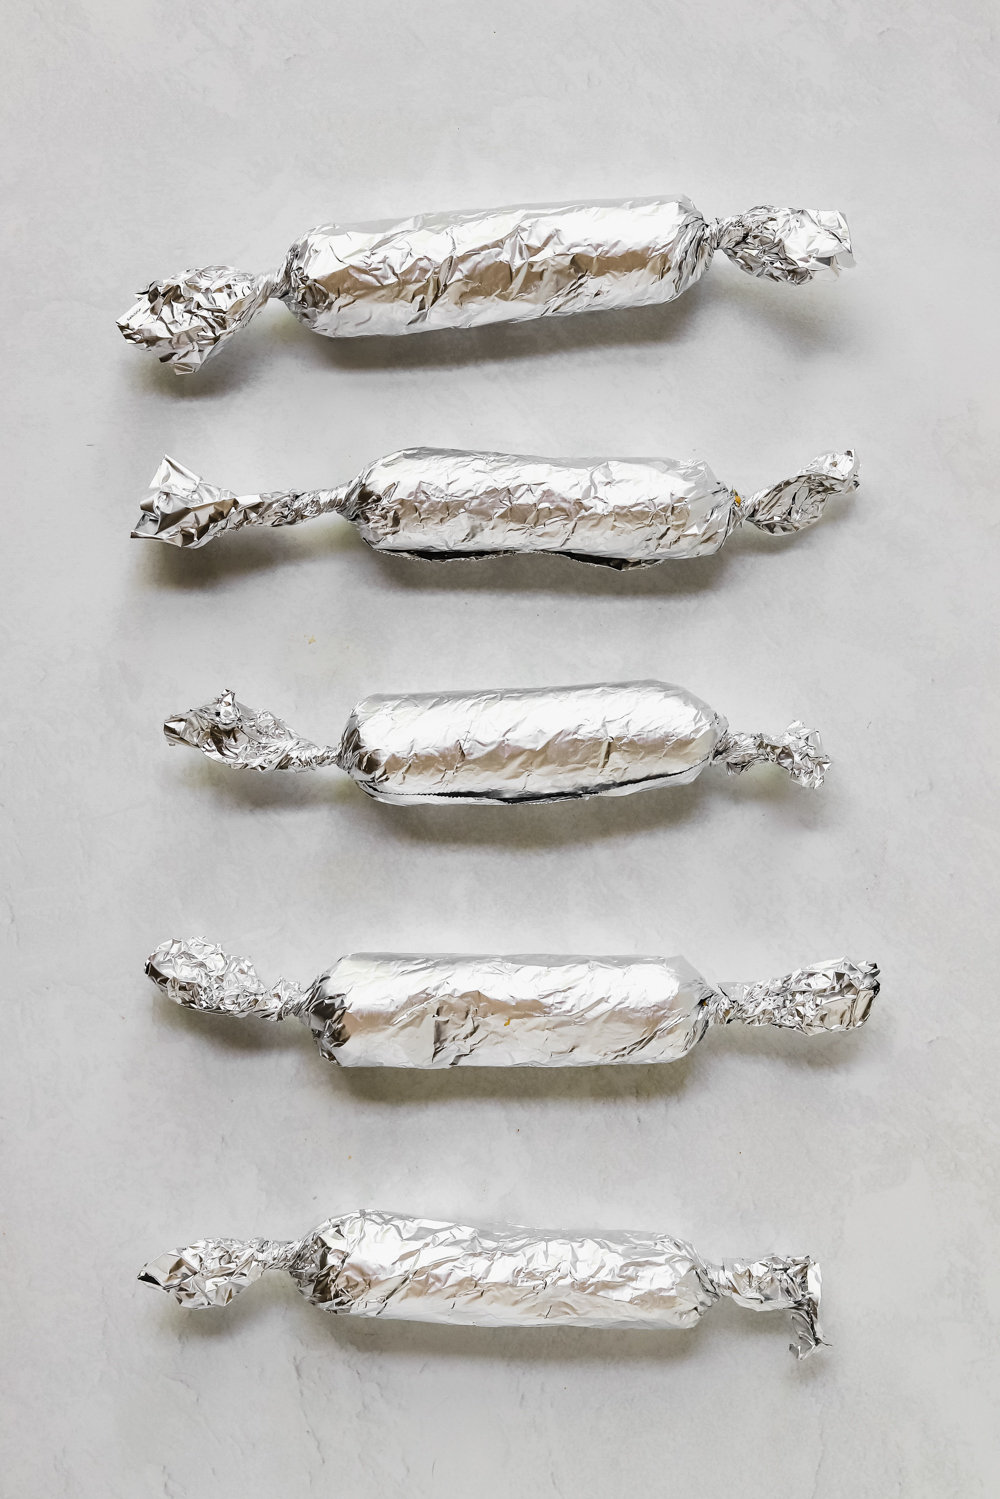 Uncooked seitan sausage dough wrapped up in aluminum foil before baking.